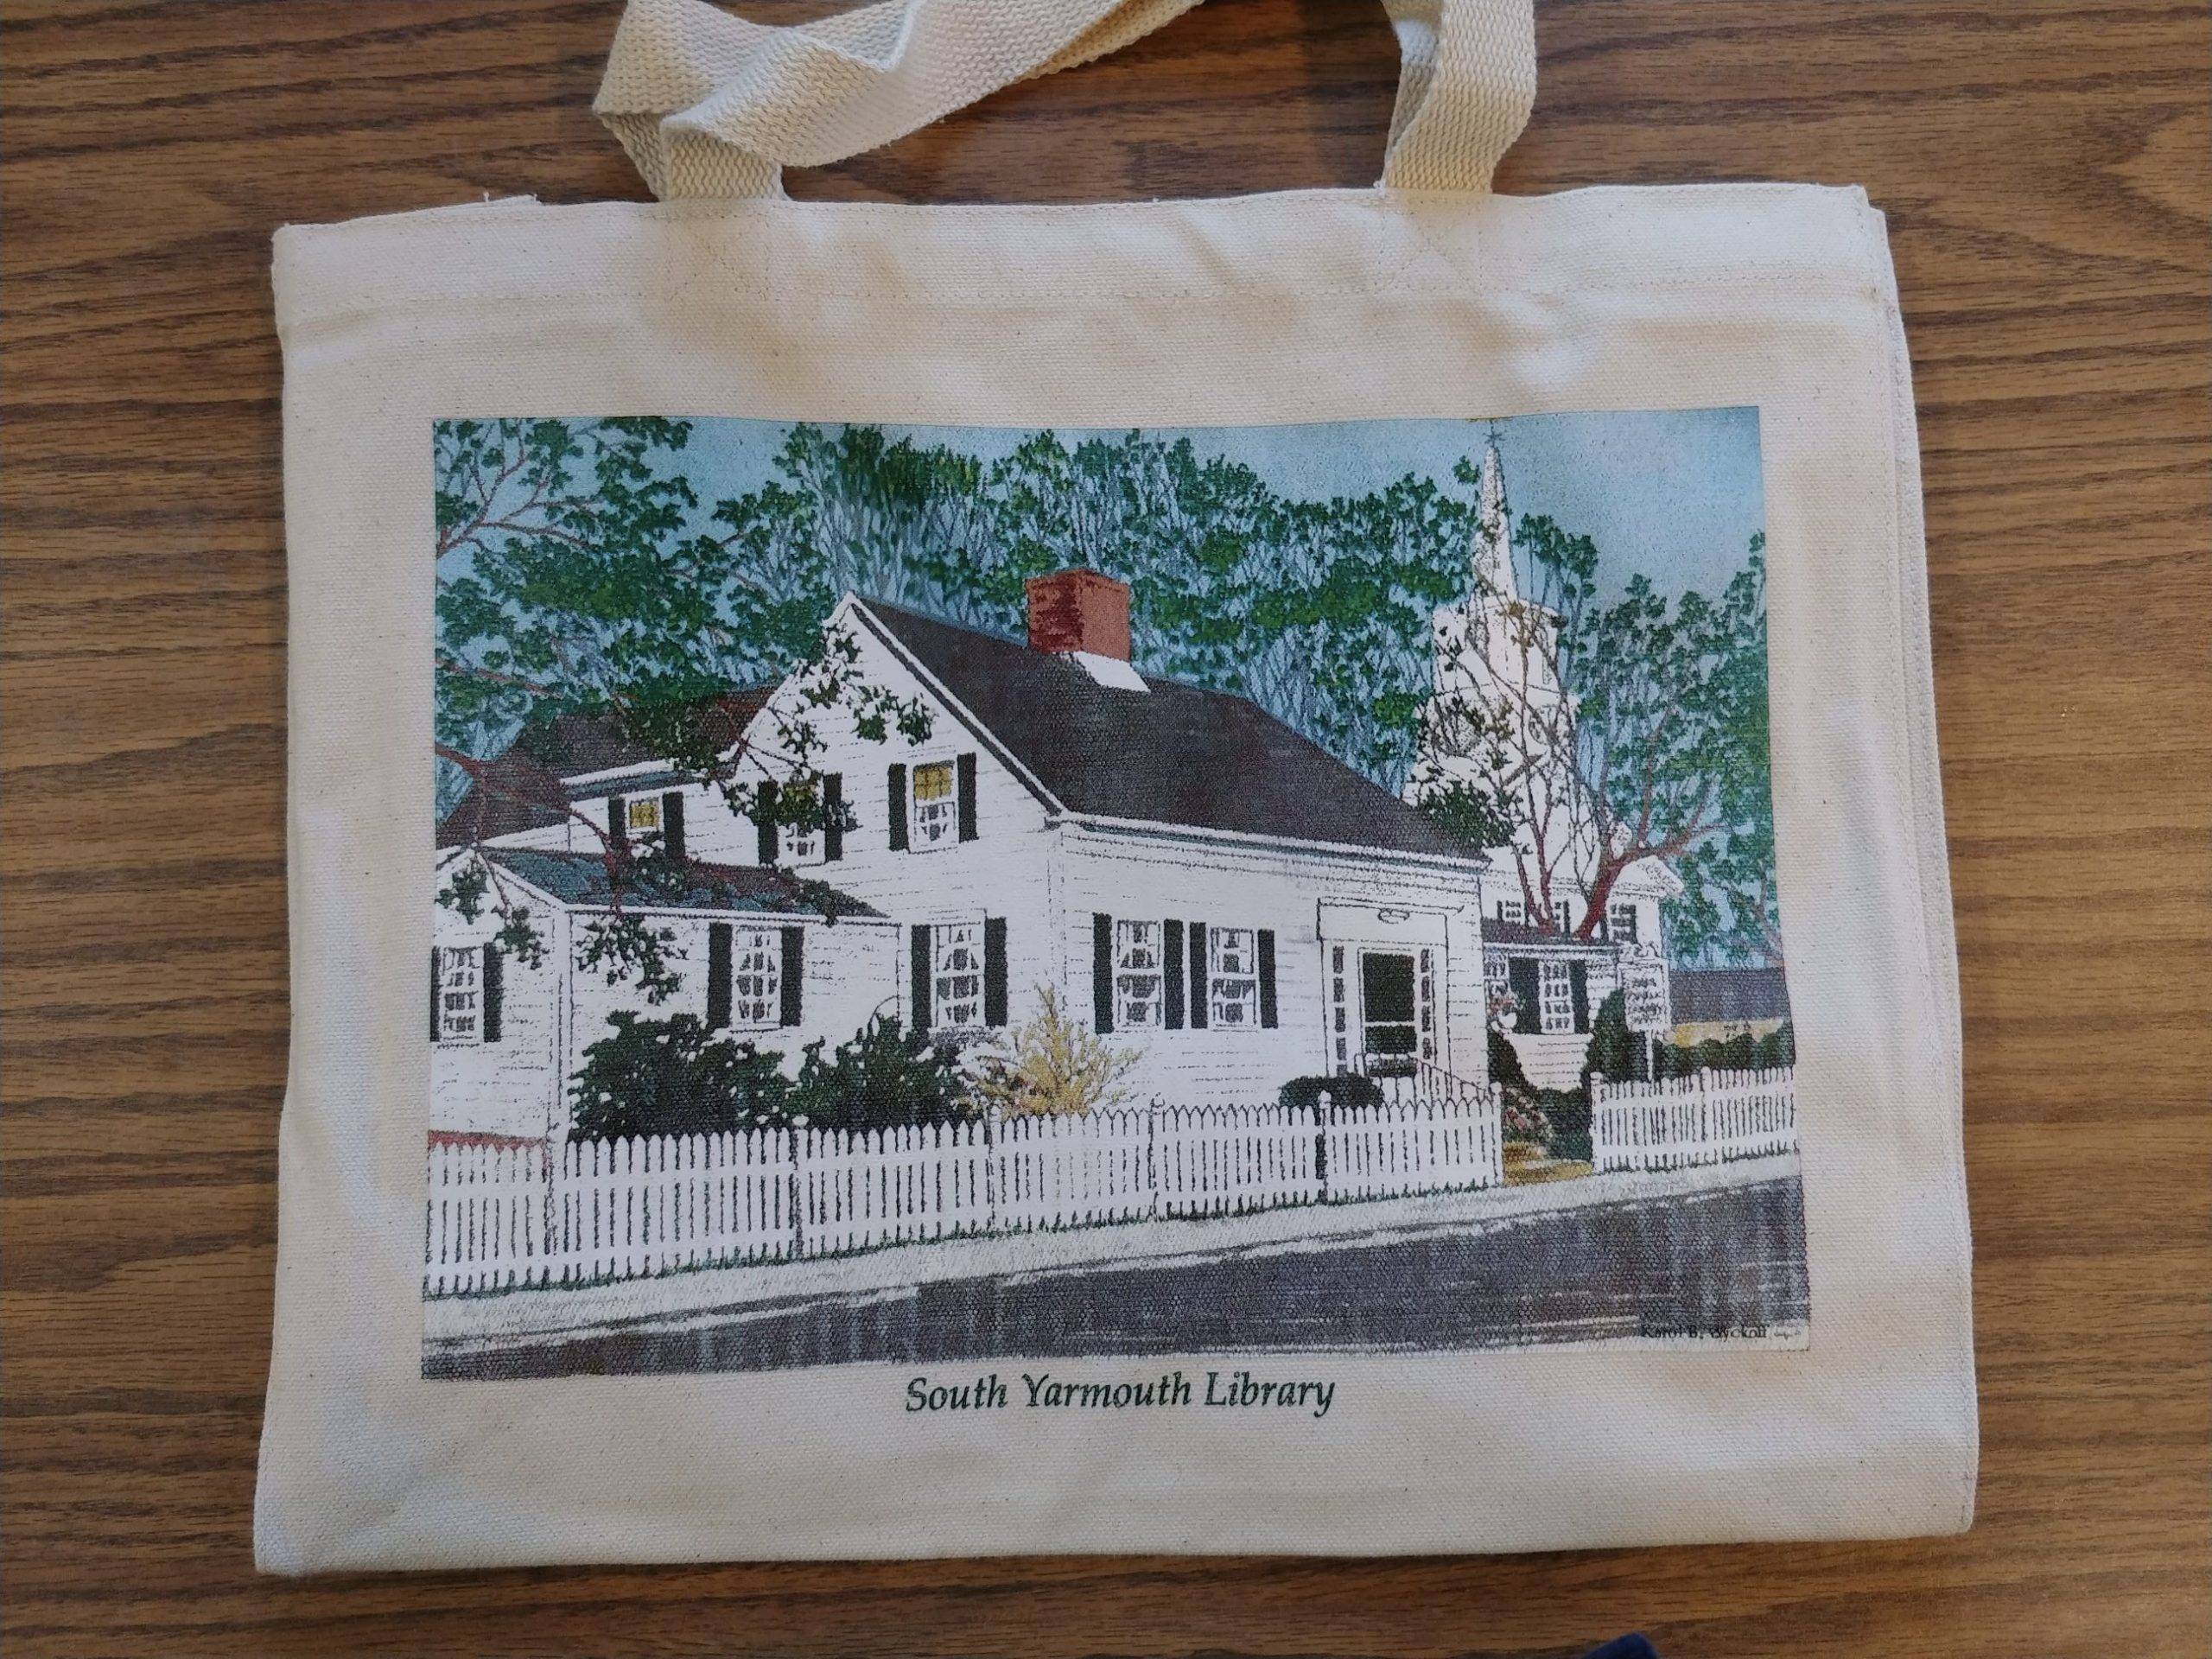 Tote Bags with a screenprint image by local artist, Karol Wyckoff, of the South Yarmouth Library building.